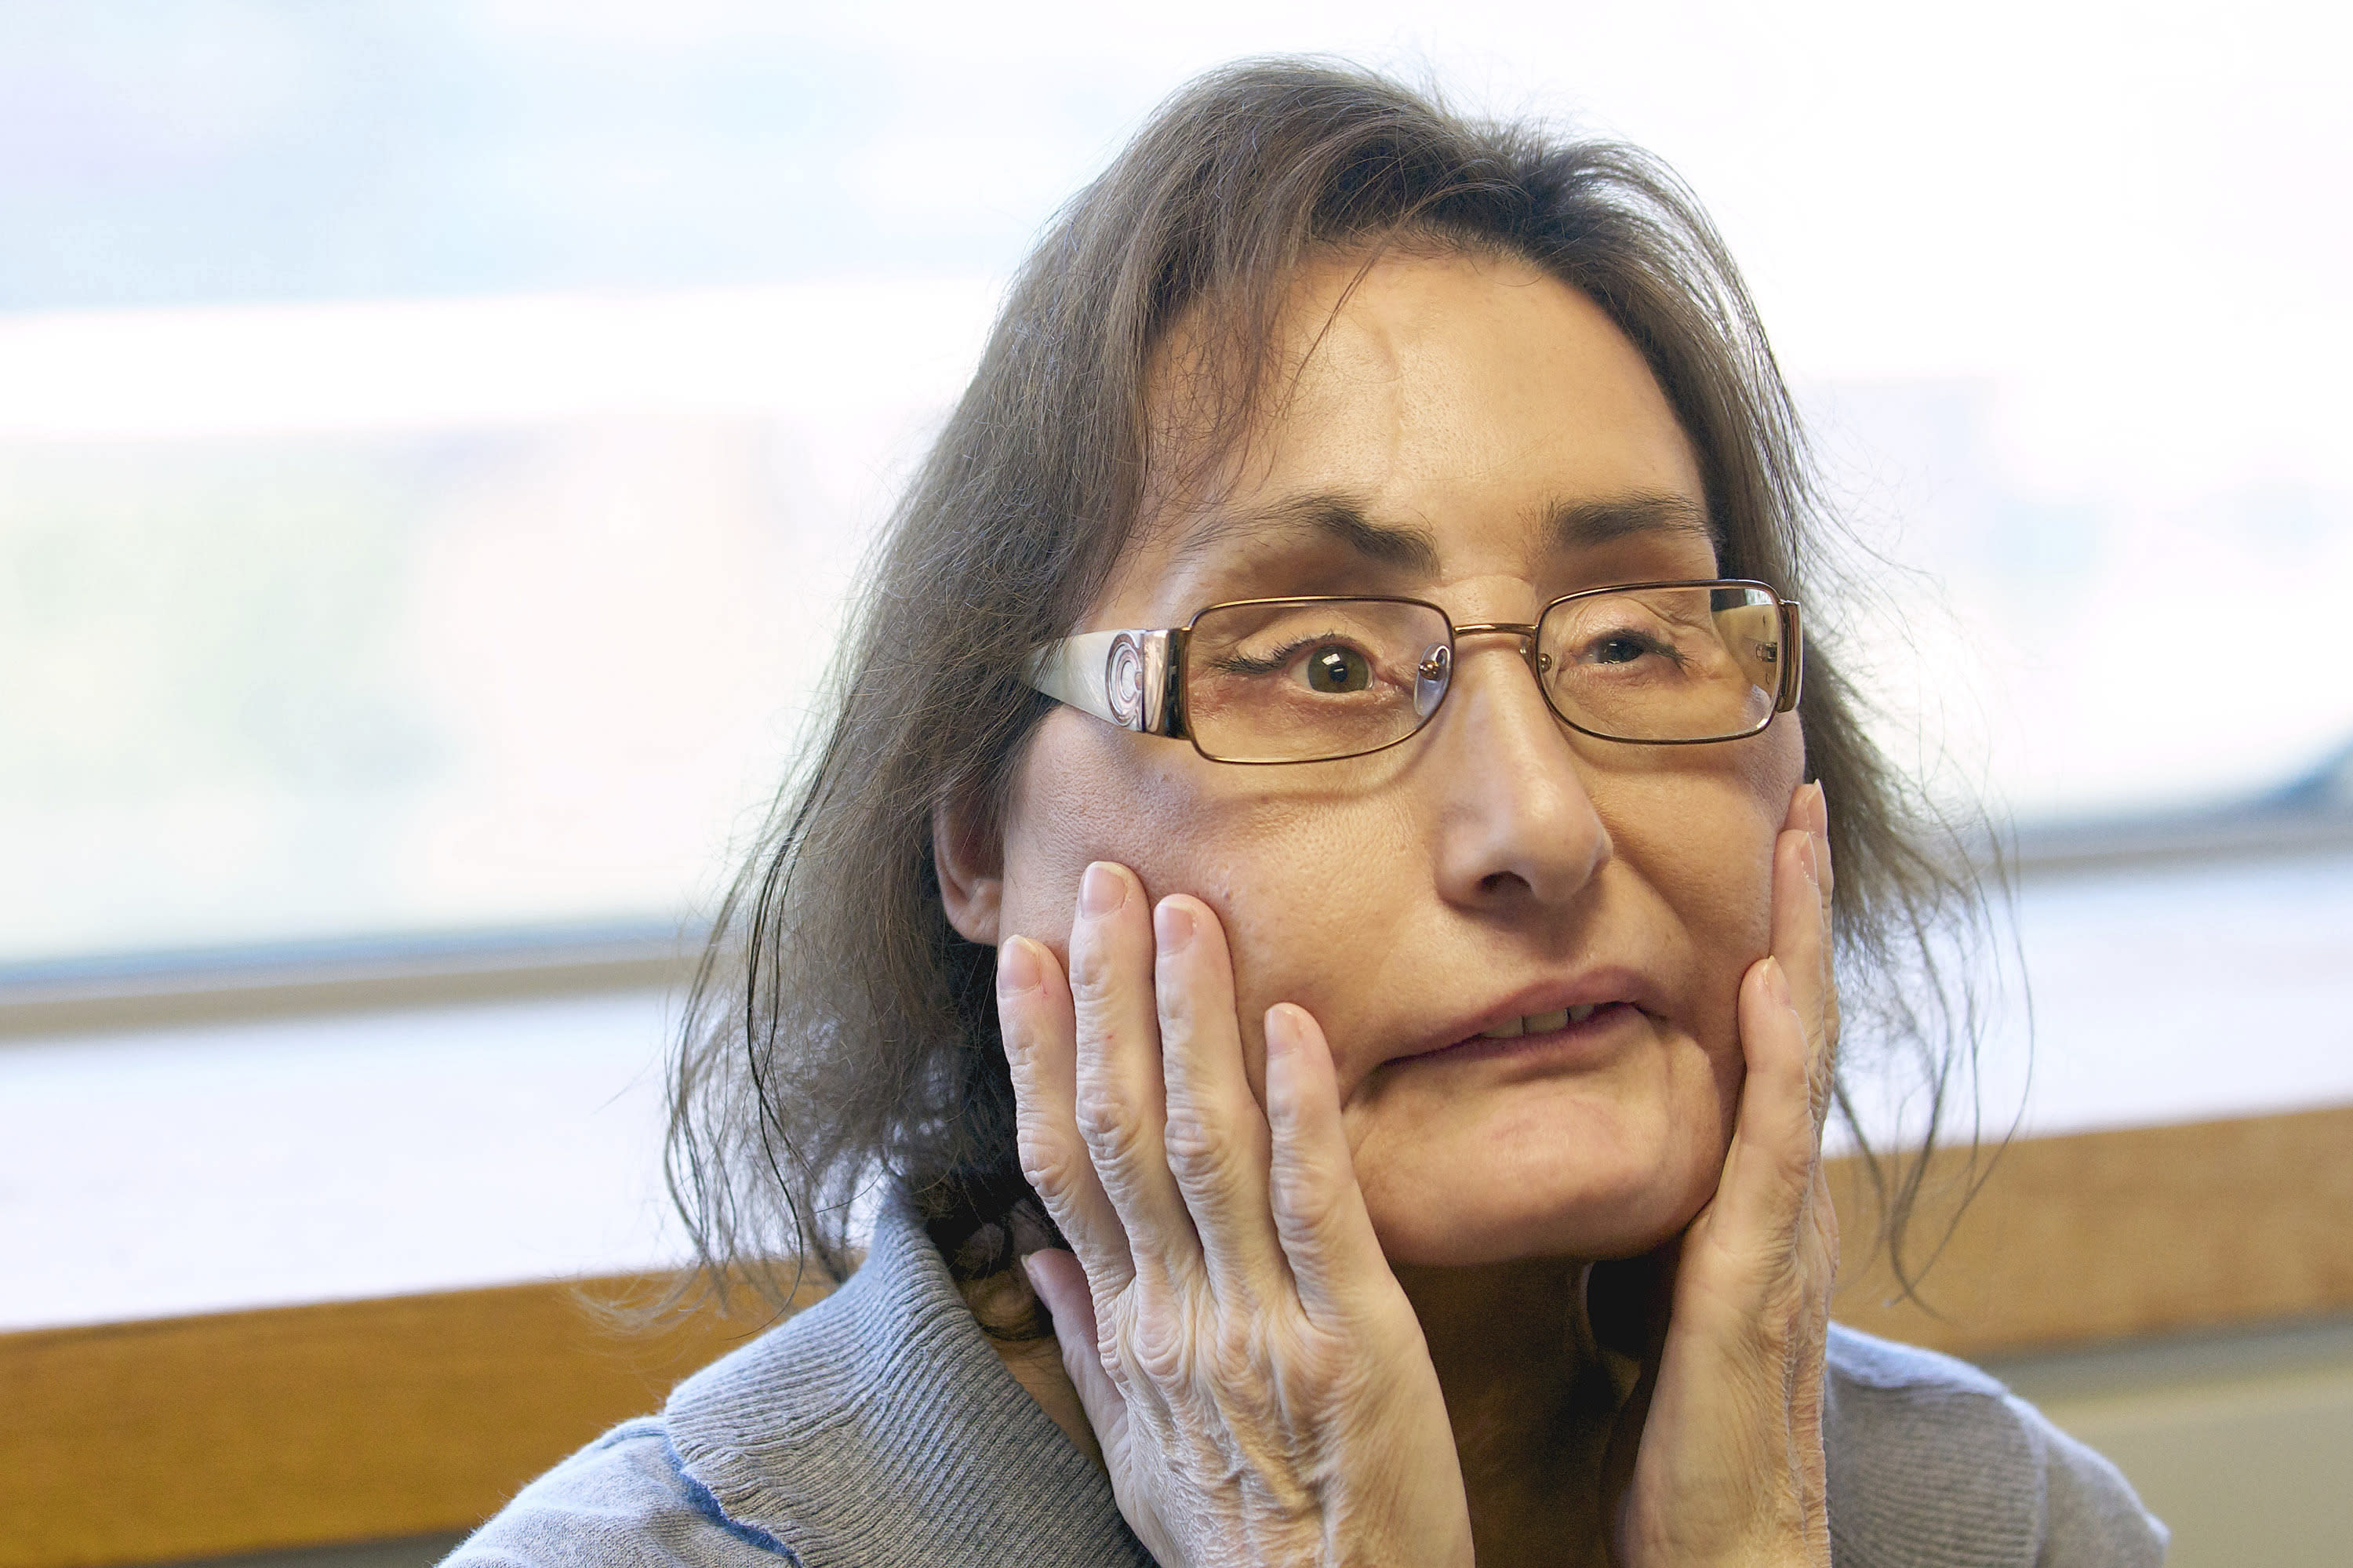 Connie Culp, first USA recipient of partial face transplant, dead at 57